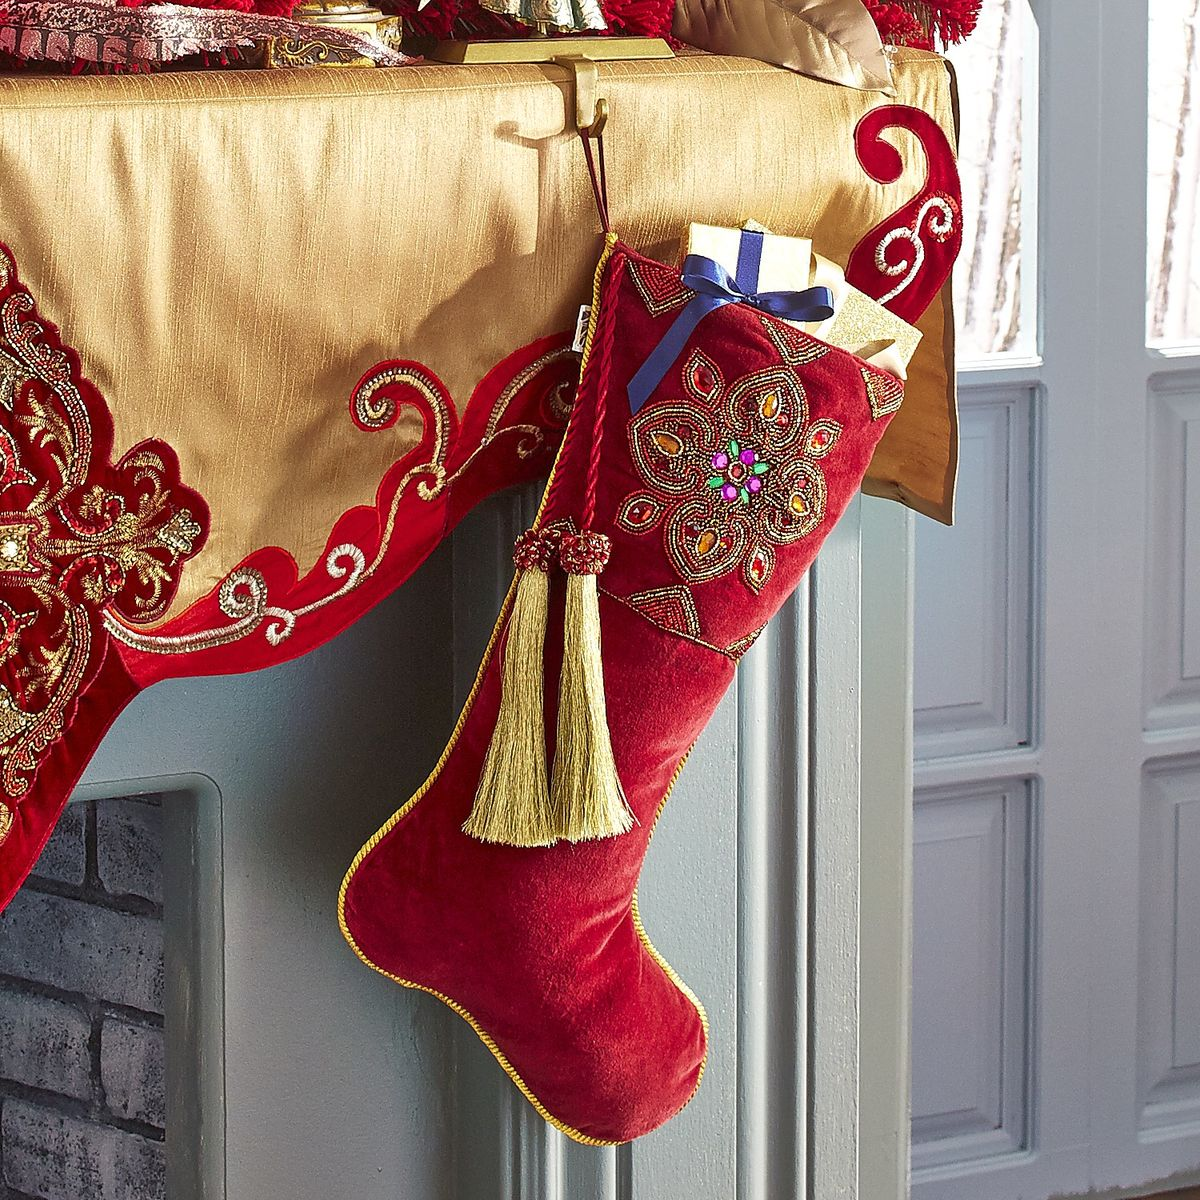 22 Unique Christmas Stockings Best Cute Diy Ideas For